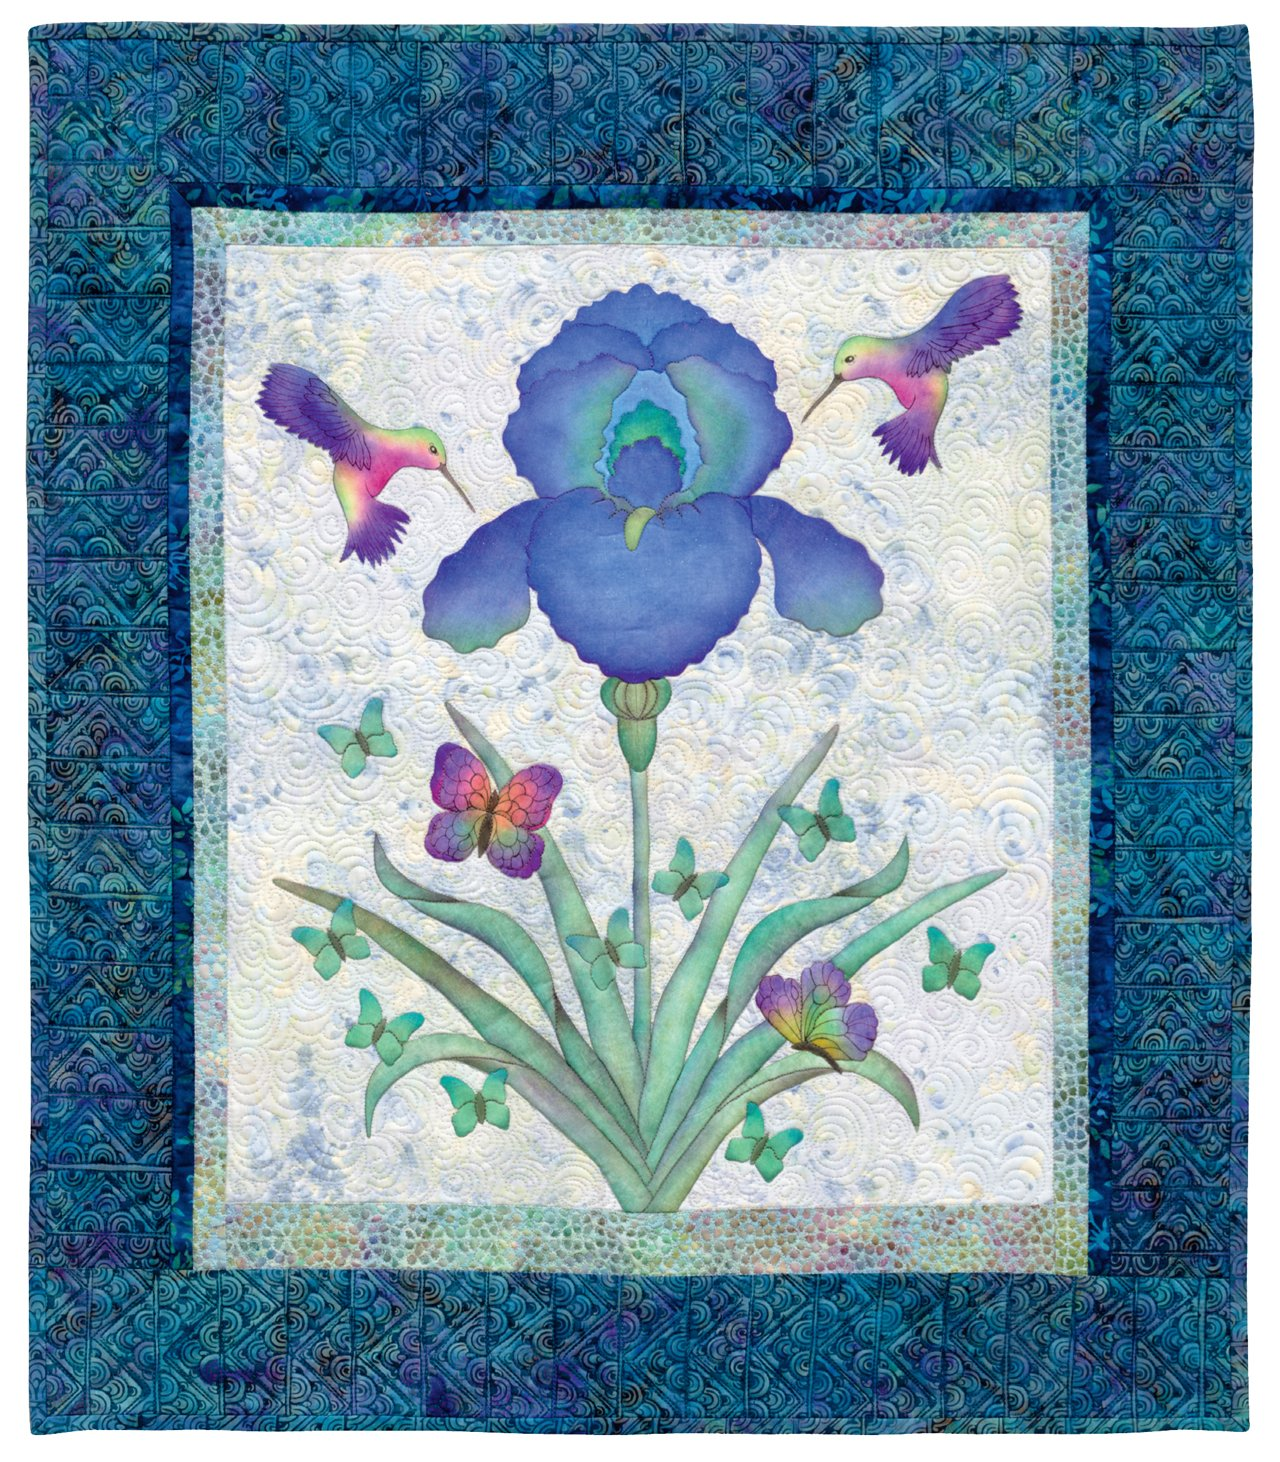 Creative Quilts from Your Crayon Box: Melt-n-Blend Meets Fusible Applique by Brand: That Patchwork Place